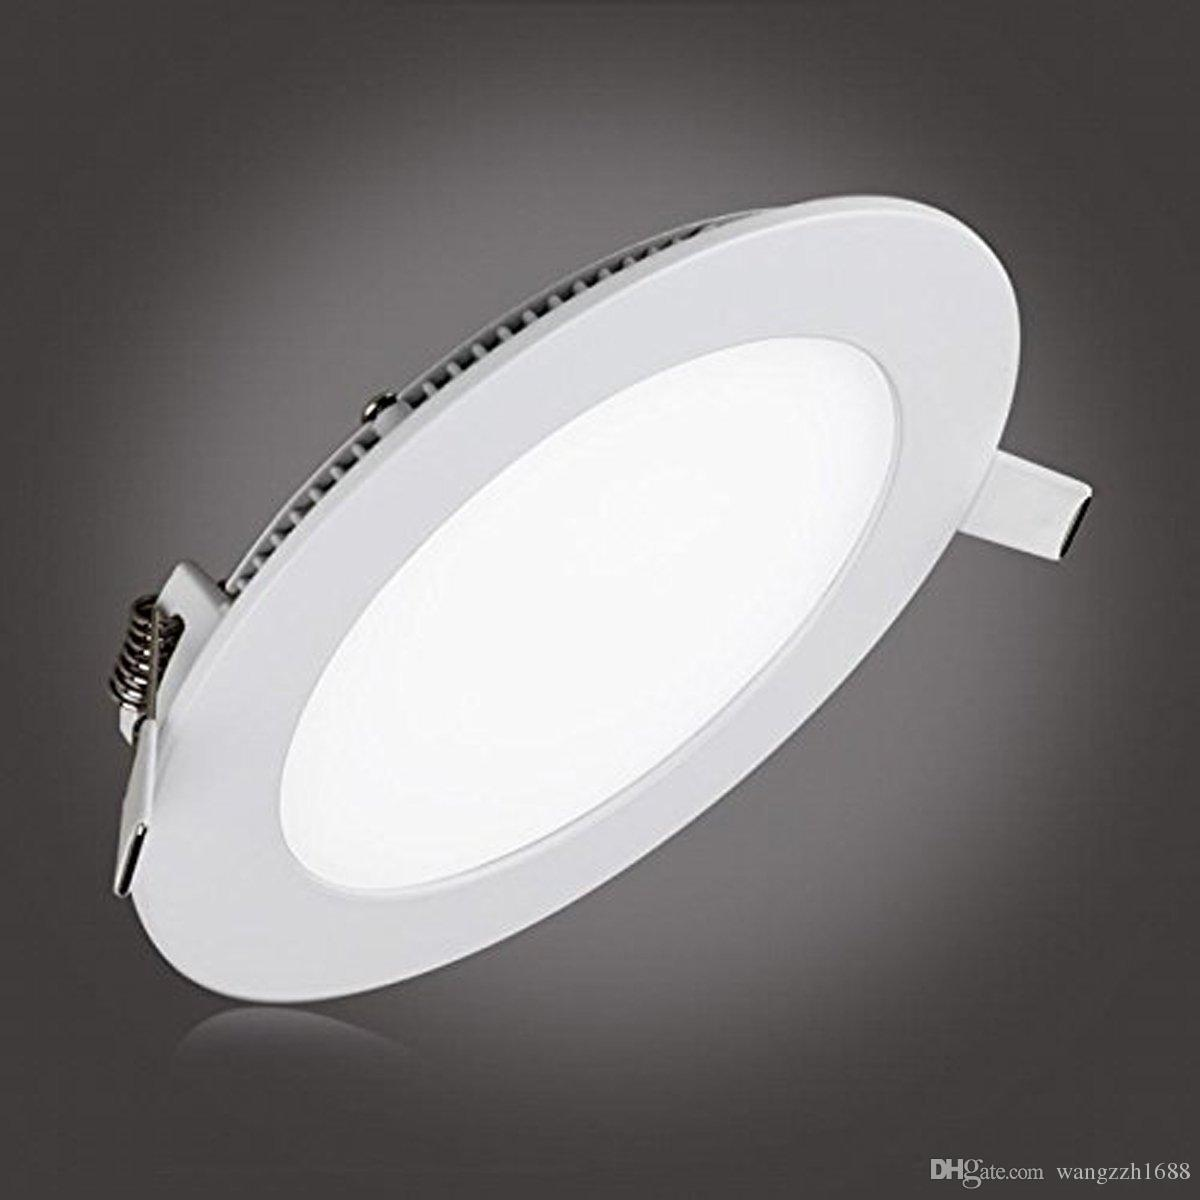 2018 Meegan 18w 8 Inch Ultra Thin Round Led Panel Light Recessed Ceiling Lights For Home Office Commercial Lighting From Zzh1688 05 Dhgate